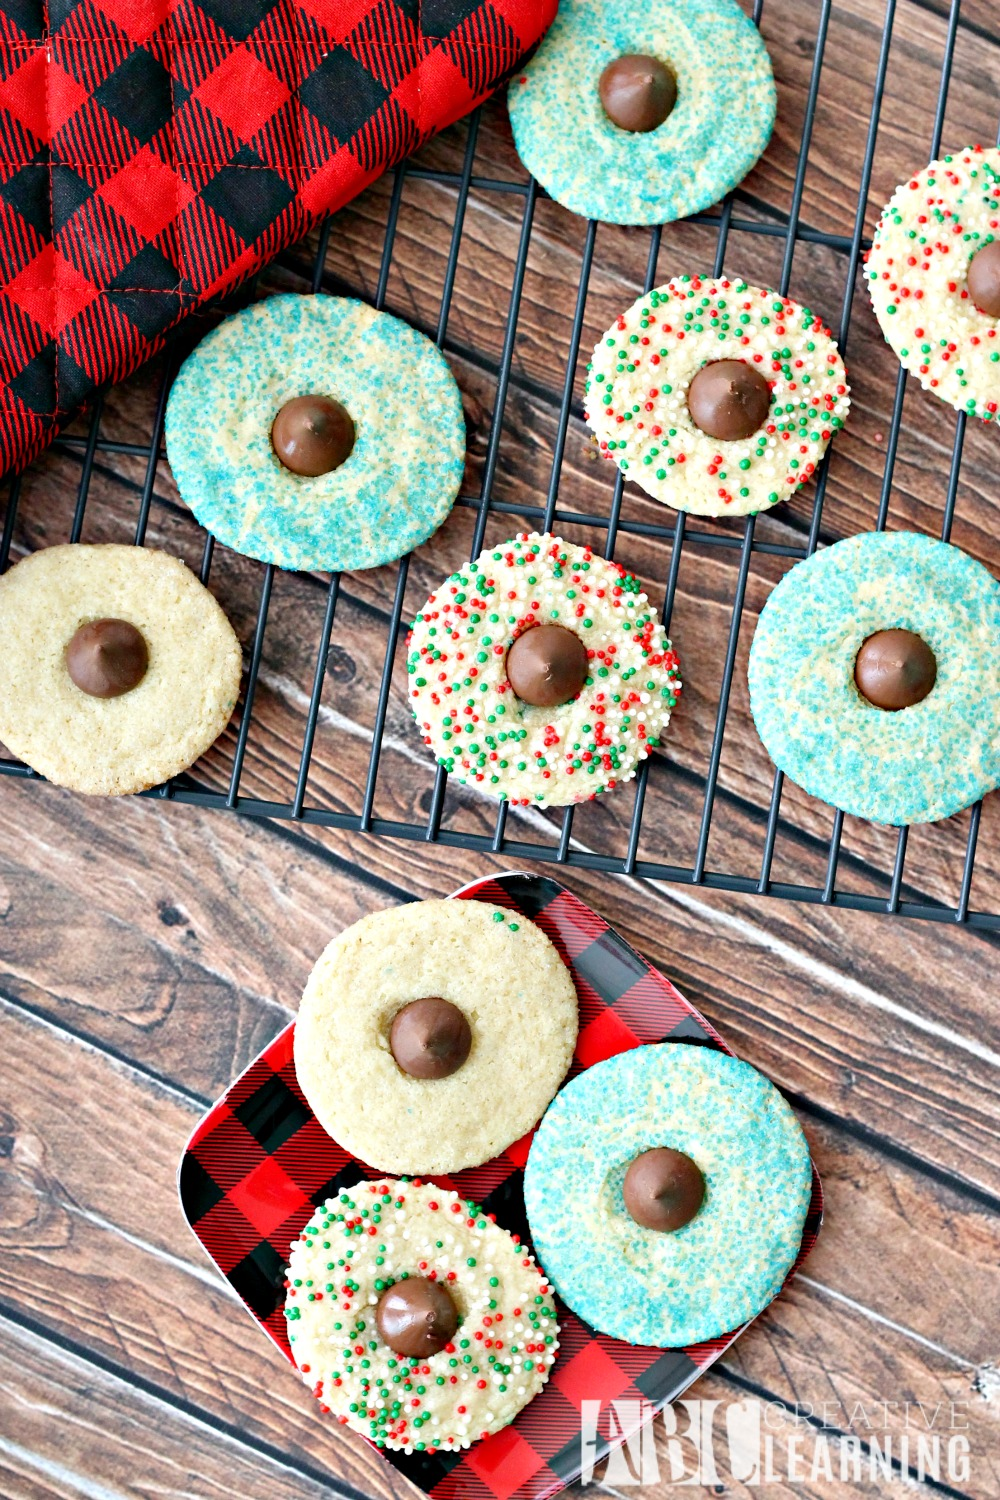 Baking Memories with Holiday Blossom Cookies top